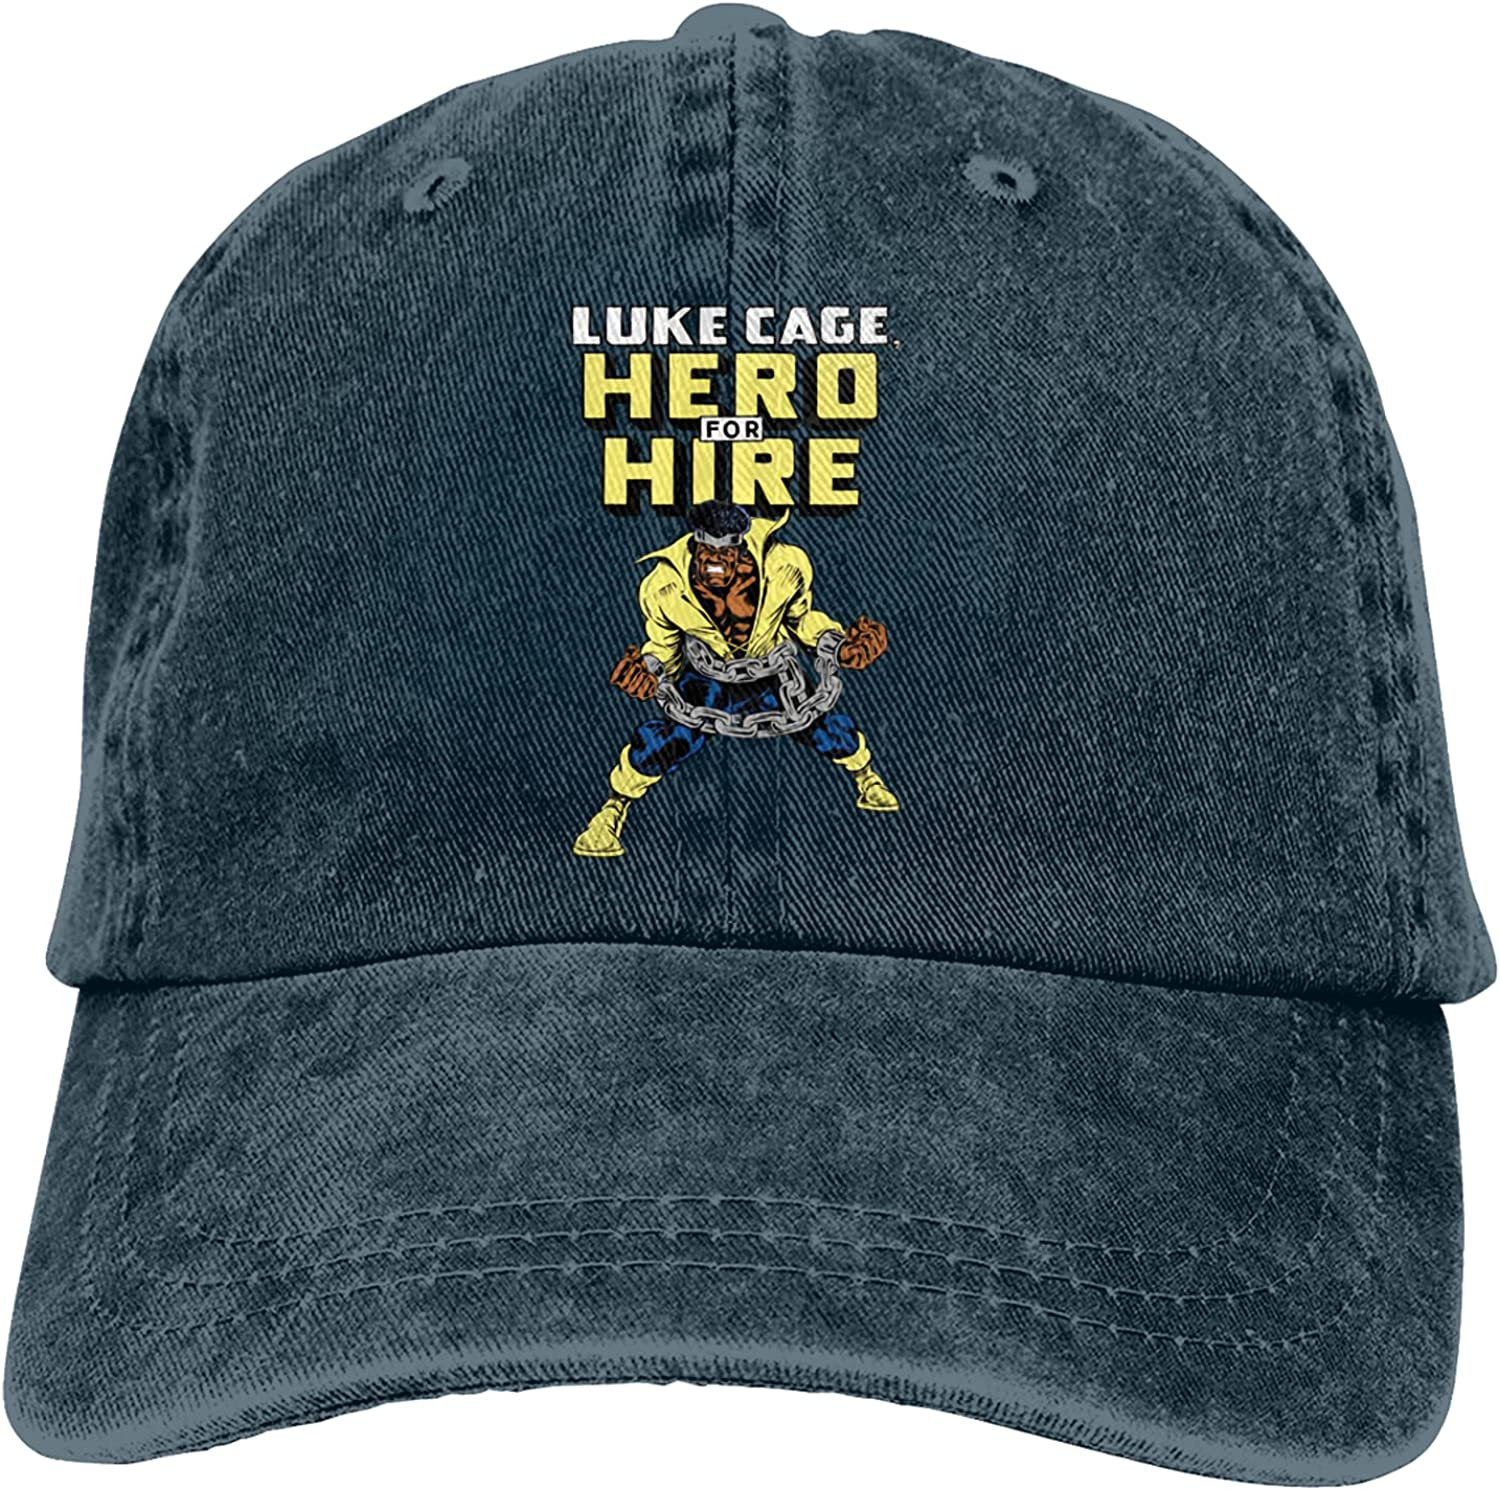 Dimmo Luke Cage Hero for Hire Cowboy Hat for Men and Women Adjustable Unisex Hat Fashion Drawstring Girl with Cute Graphics Navy